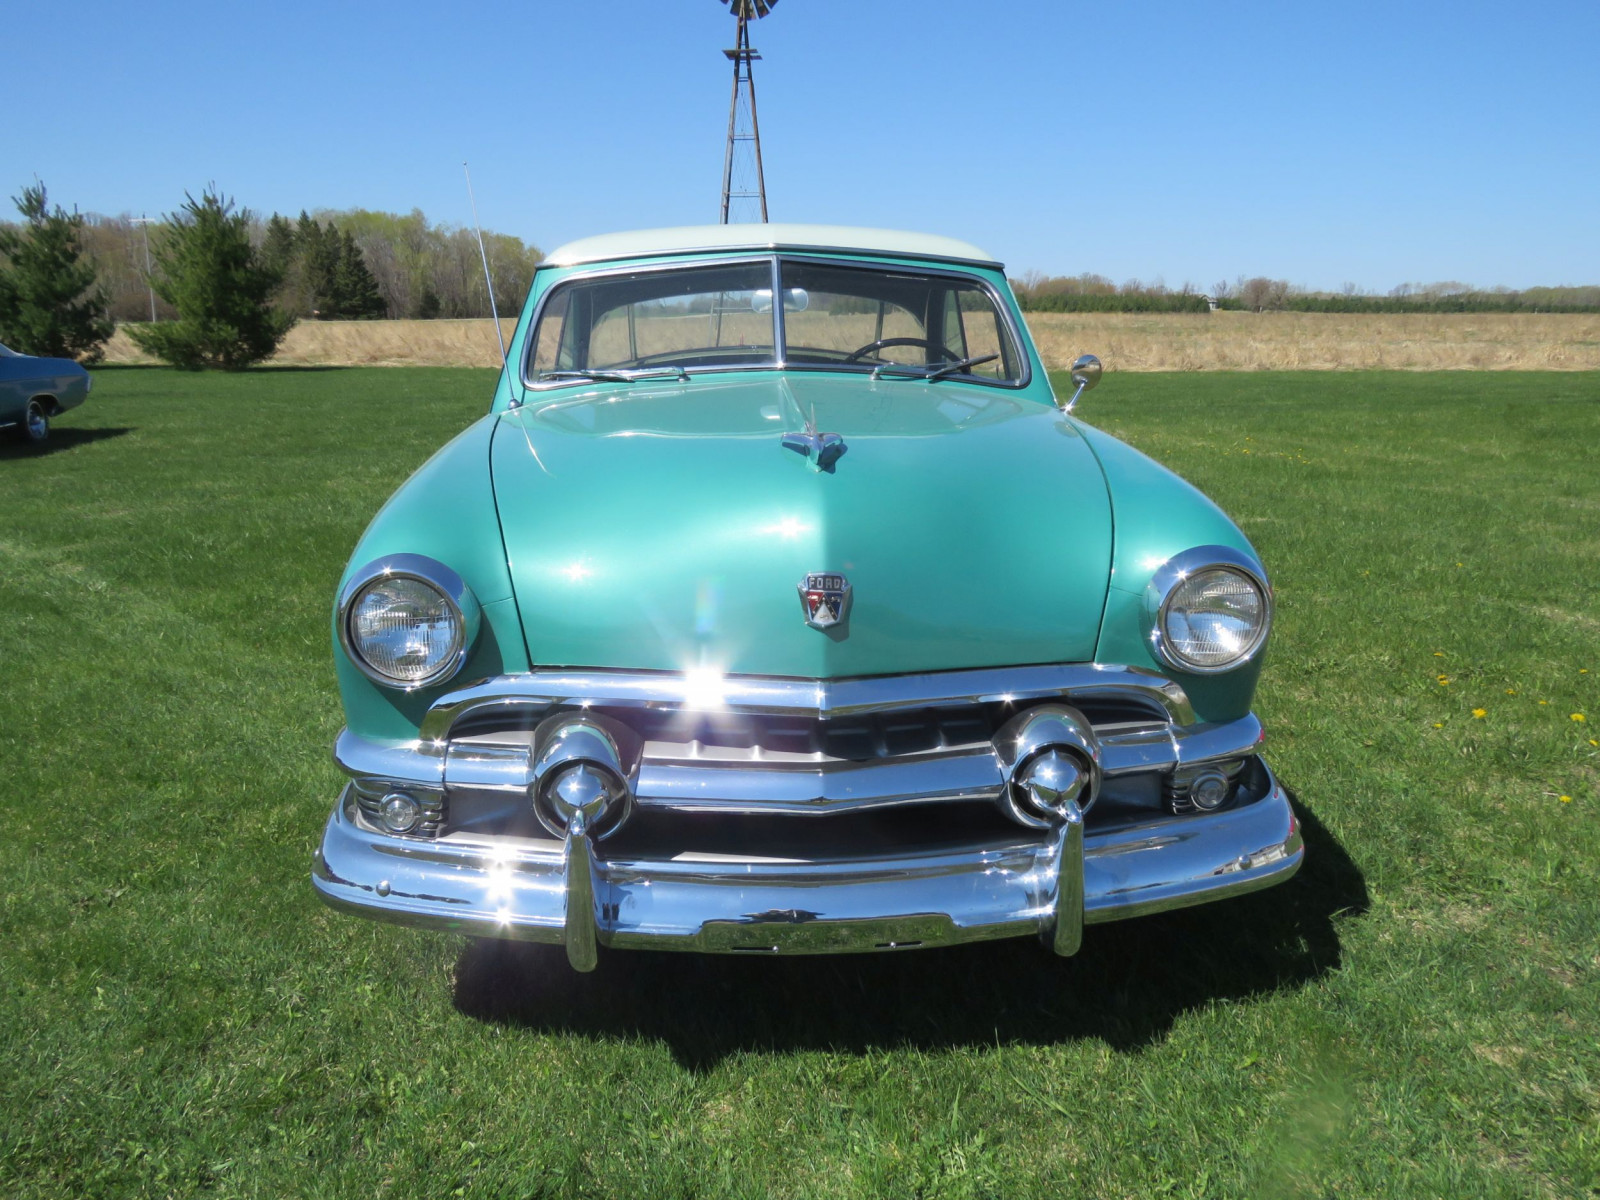 1951 Ford Victoria 2dr HT - Image 2